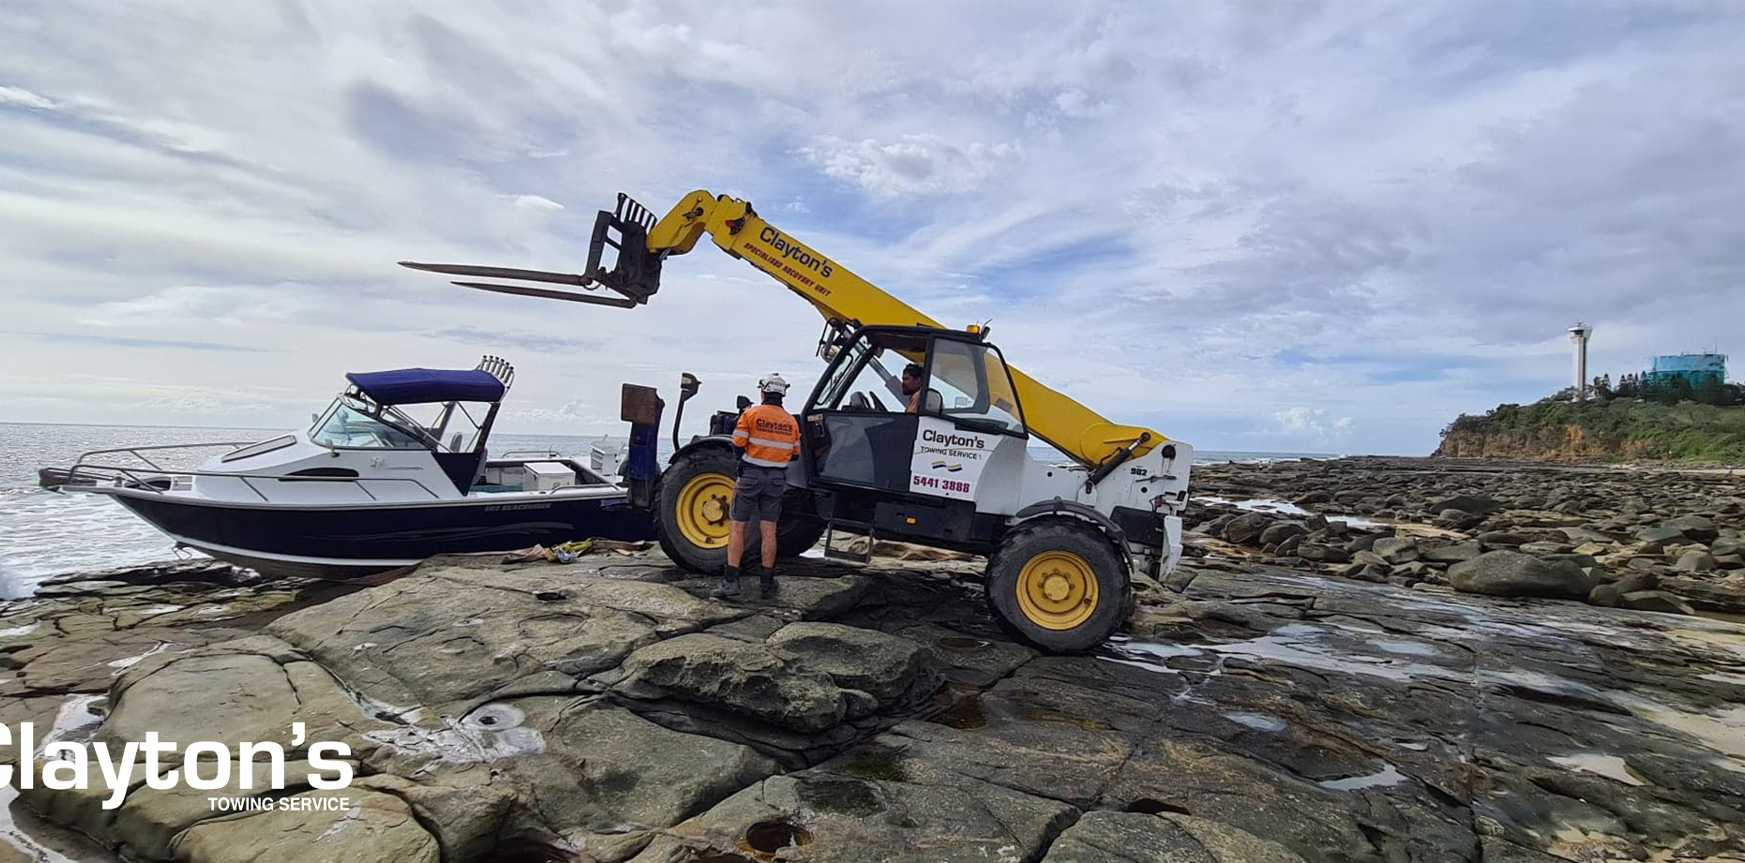 Clayton's Towing crews came to the rescue when a skipper accidentally ended up on the rocks at Point Cartwright on Monday.